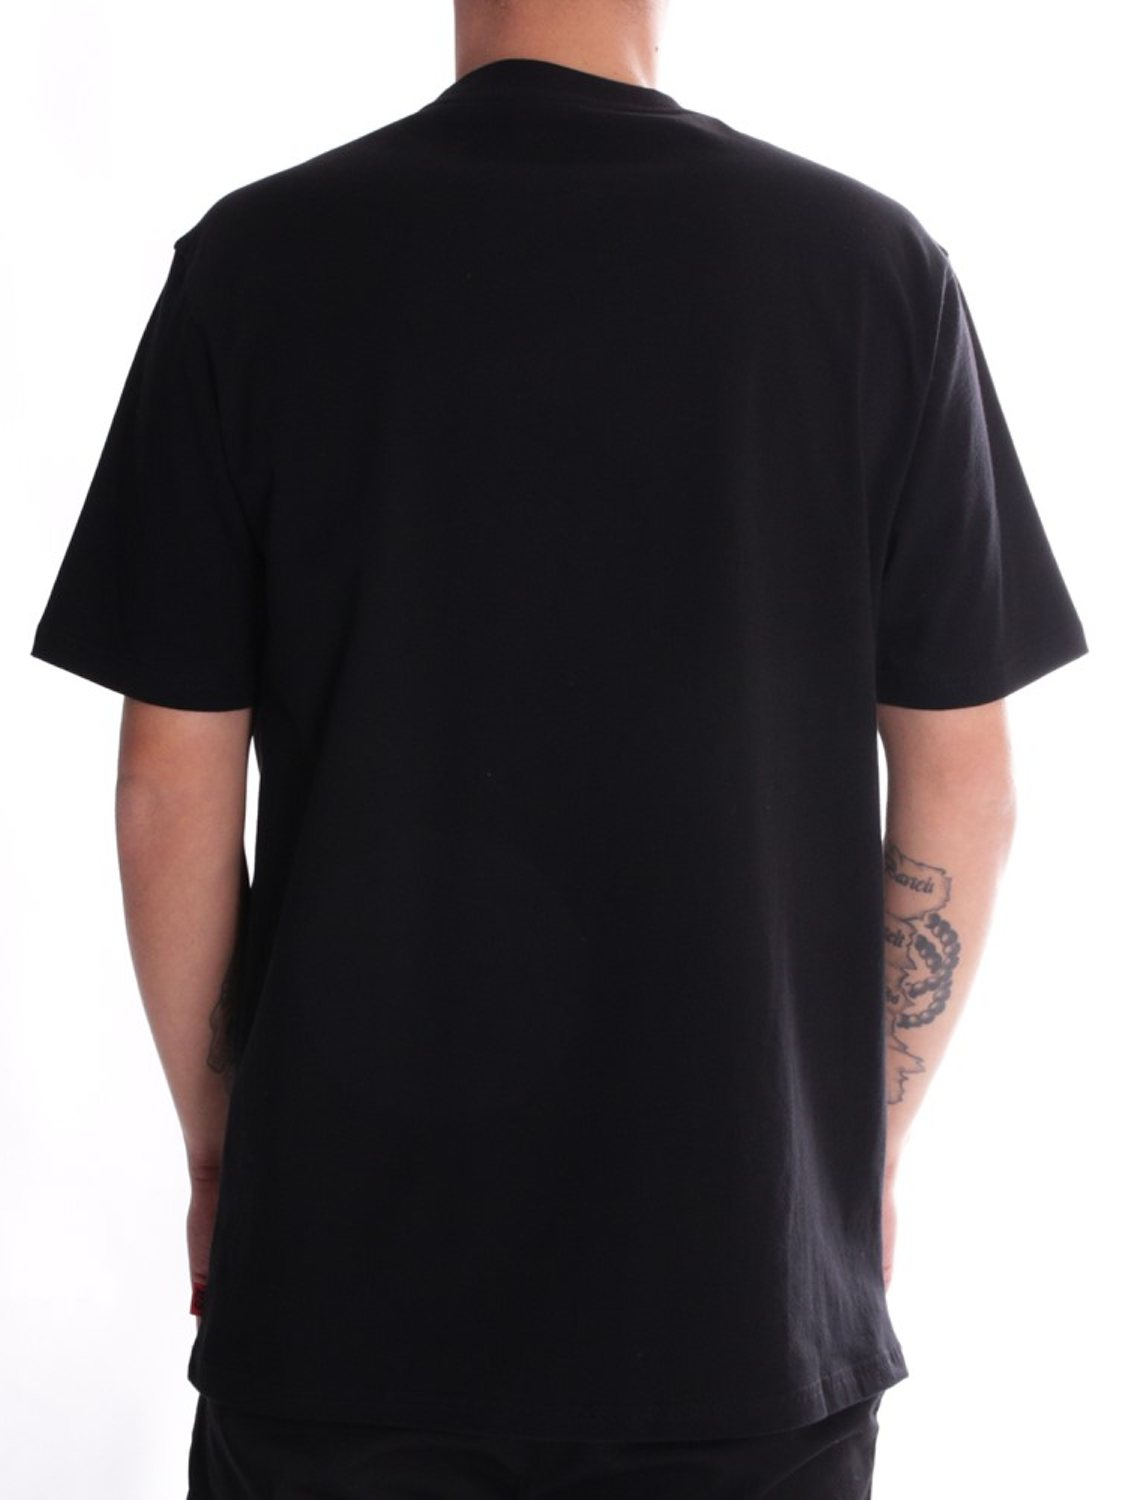 ALIS- T-SHIRT GENTLEMAN MANITURE BLACK | GATE 36 HOBRO